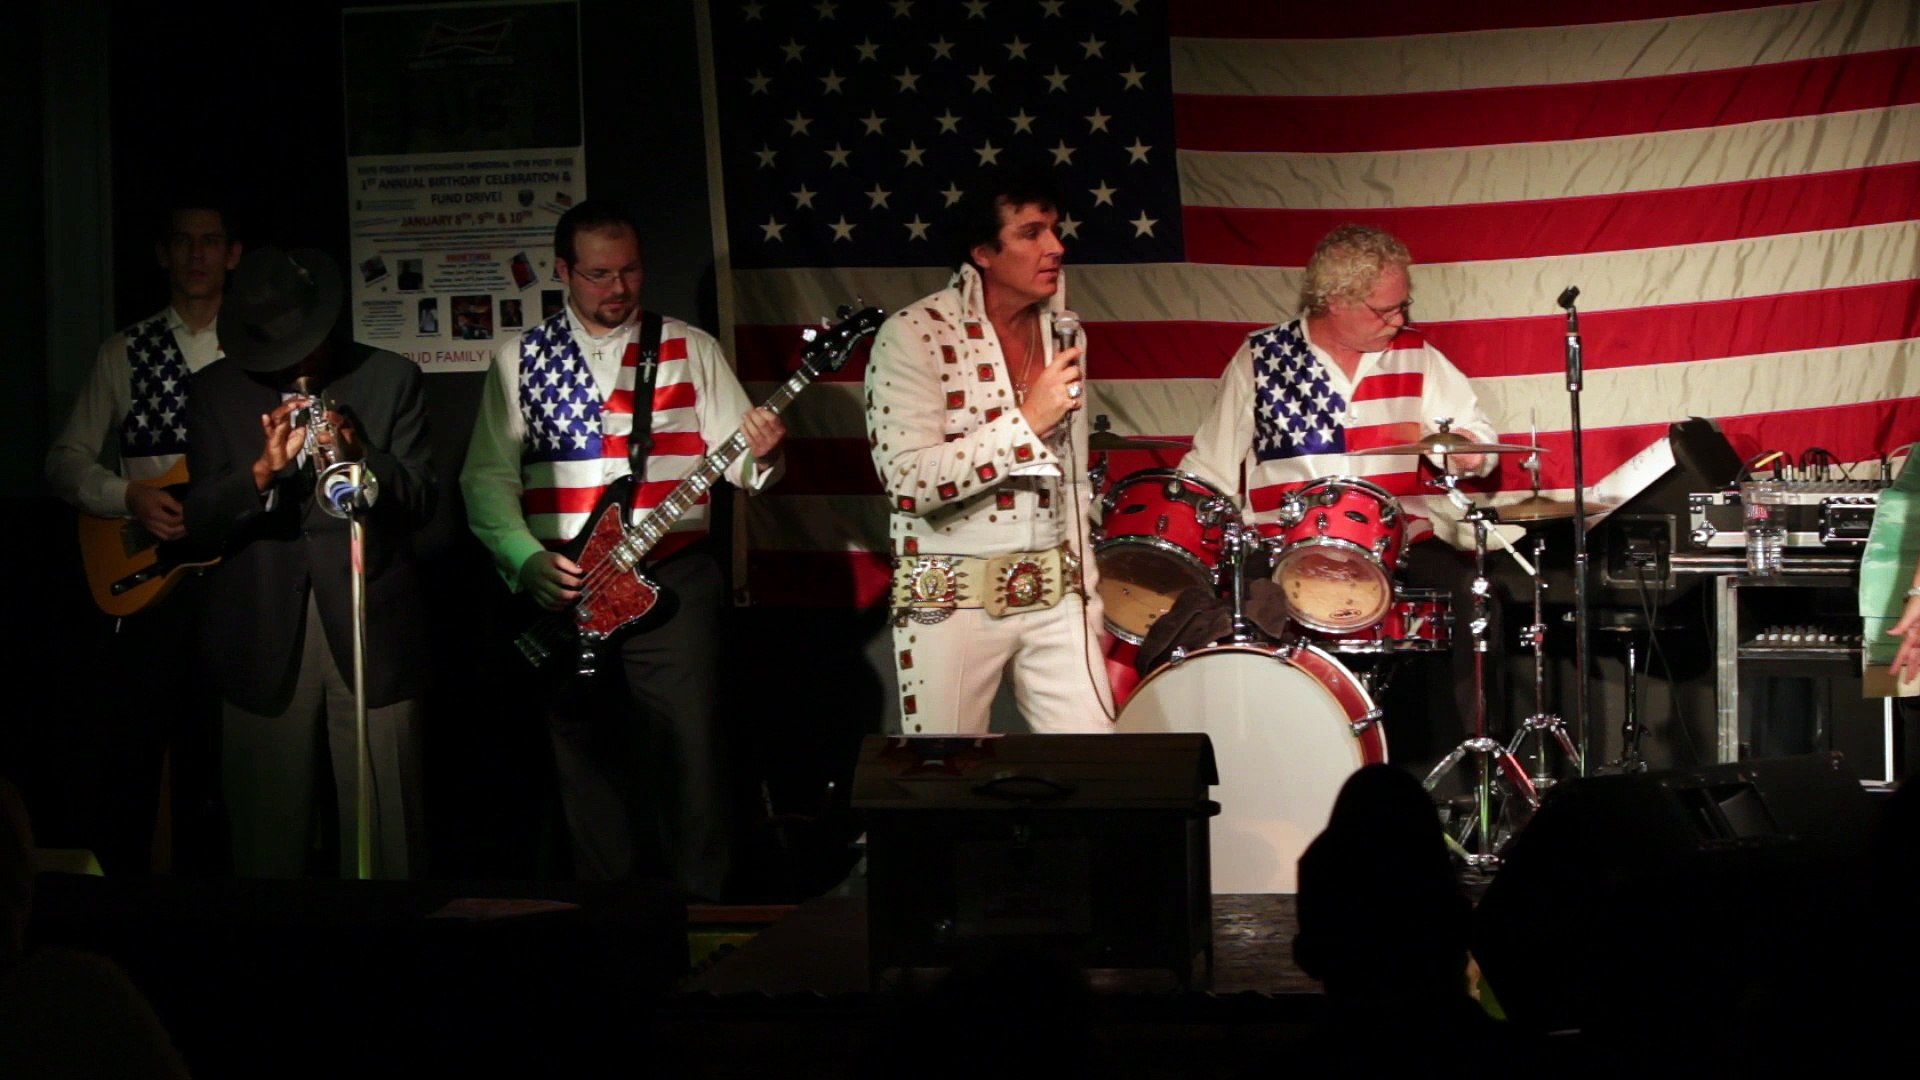 Todd Herendeen and Ben cauley perform 'Why Me Lord' Elvis Presley Memorial VFW 2015